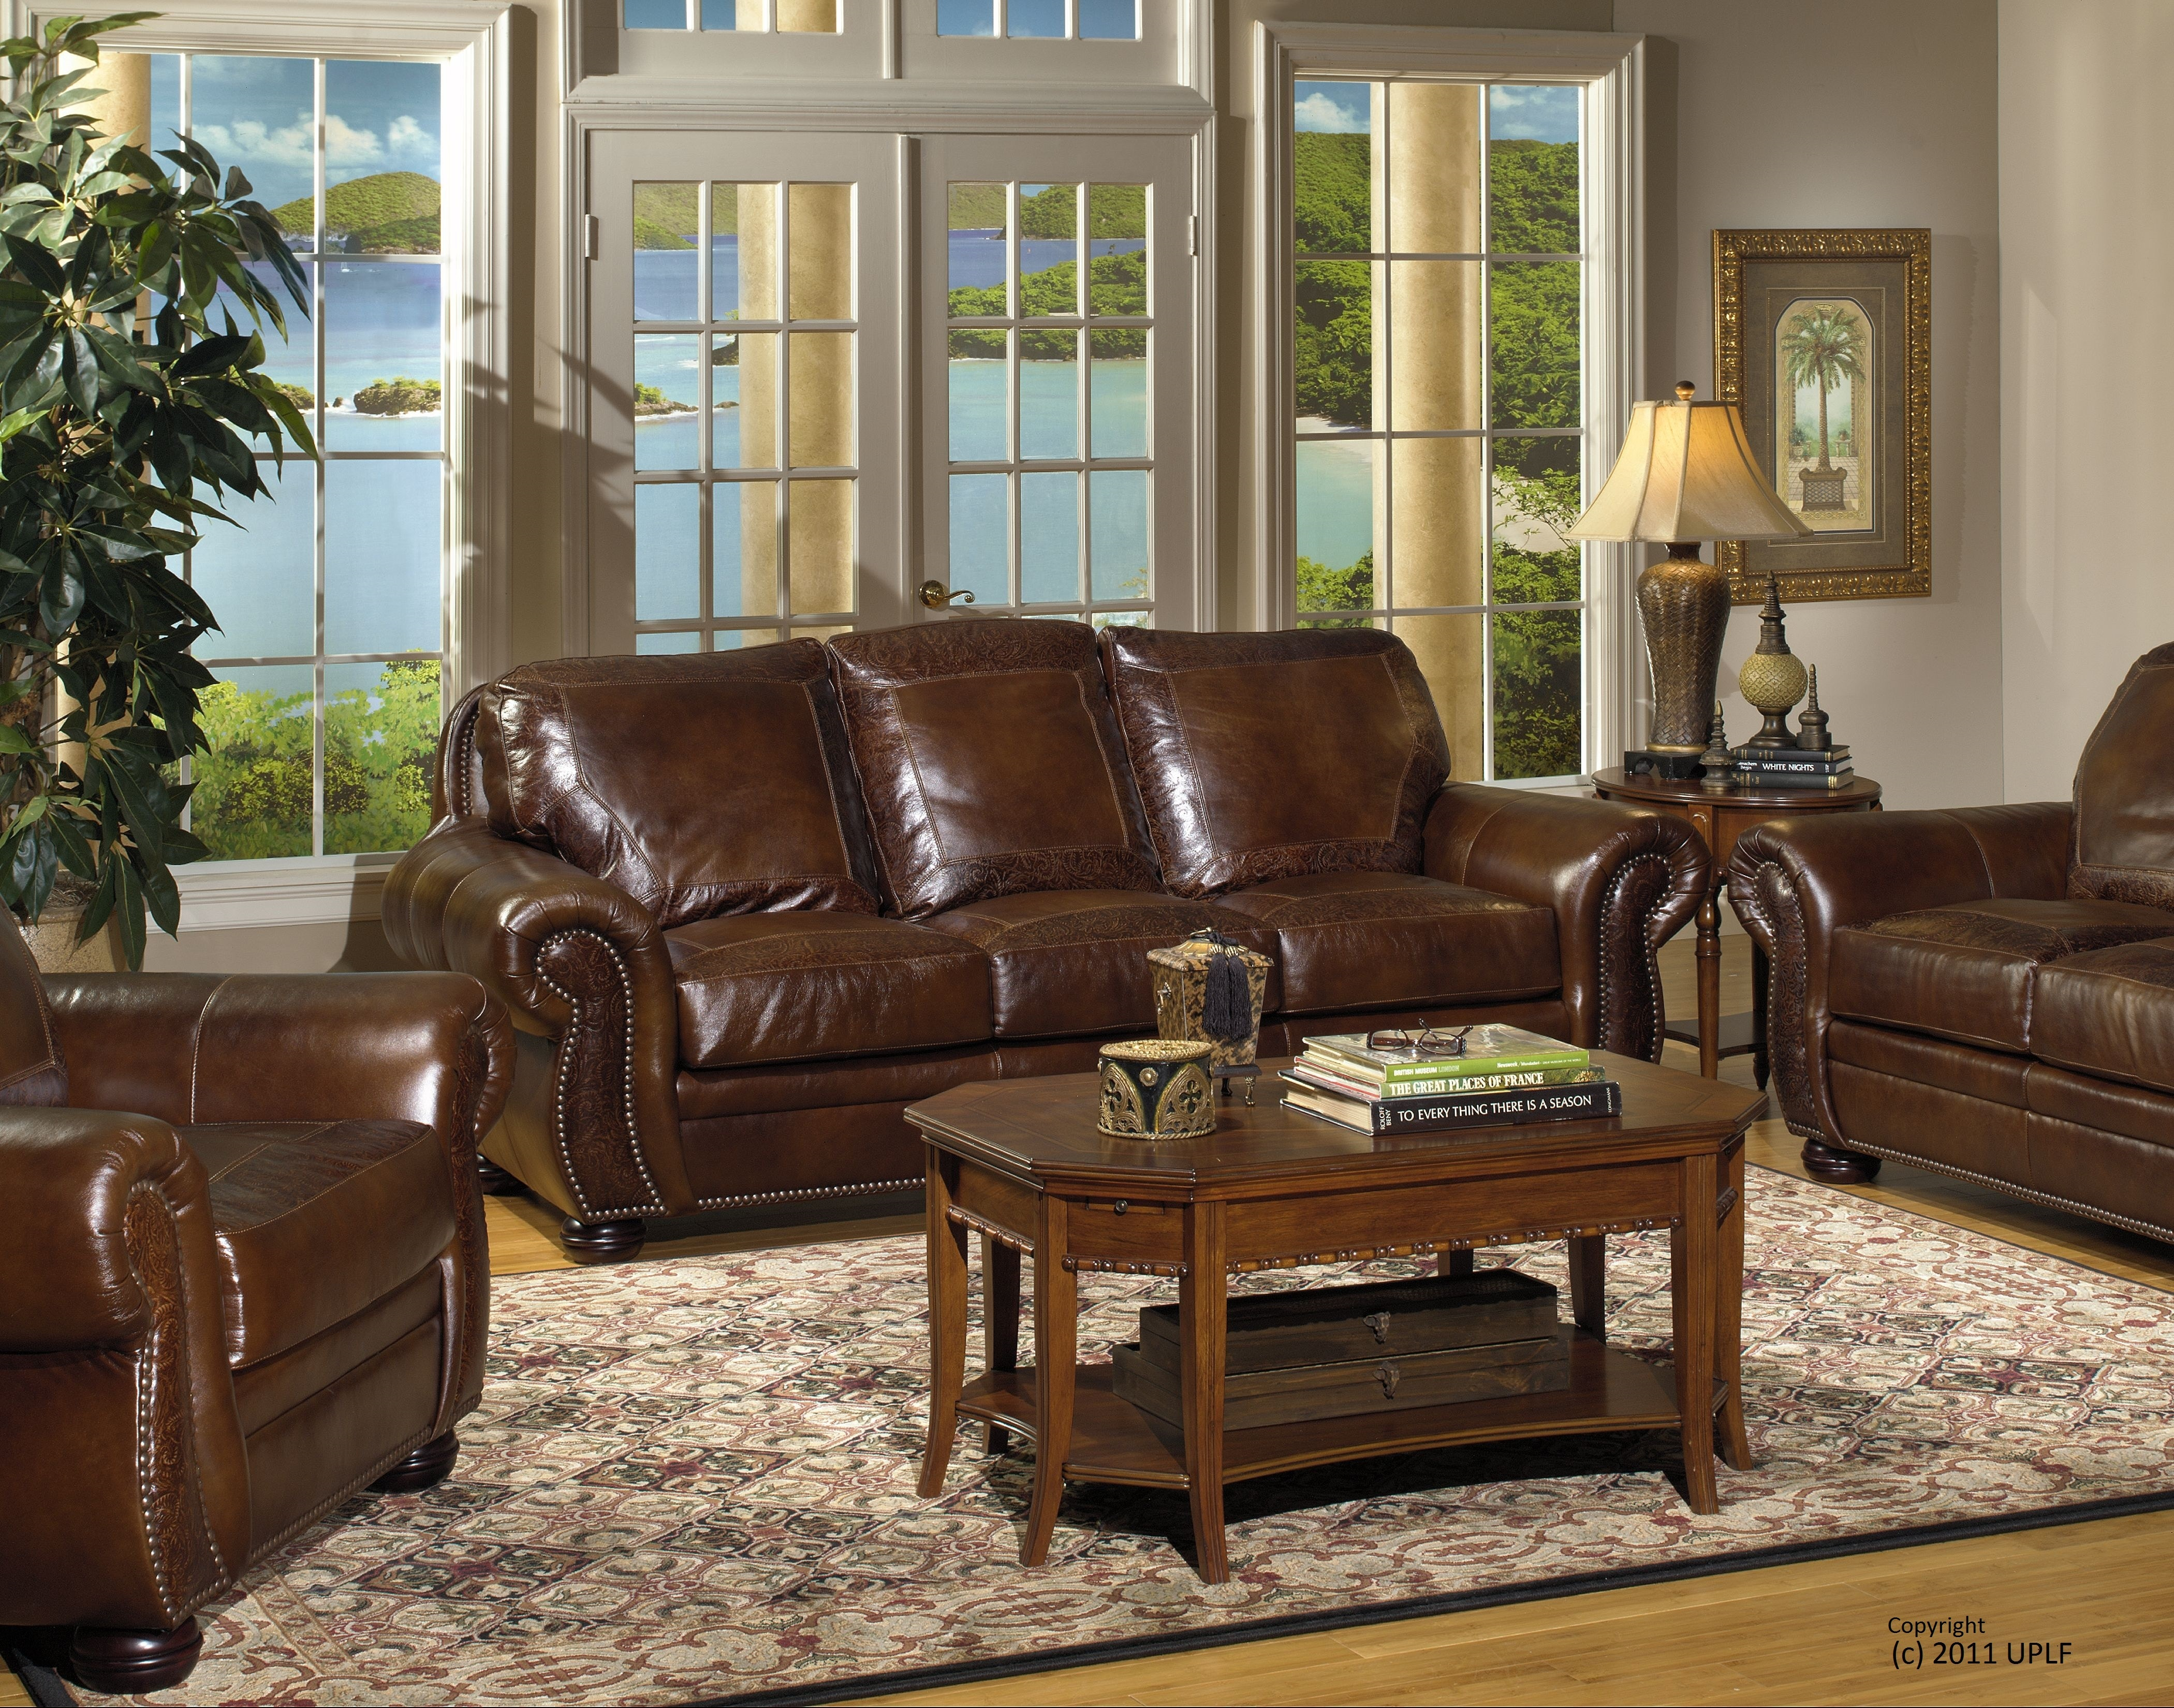 Paisley Sofa Finest American Furniture Traditional Sofa With With Nail Head Trim With Paisley